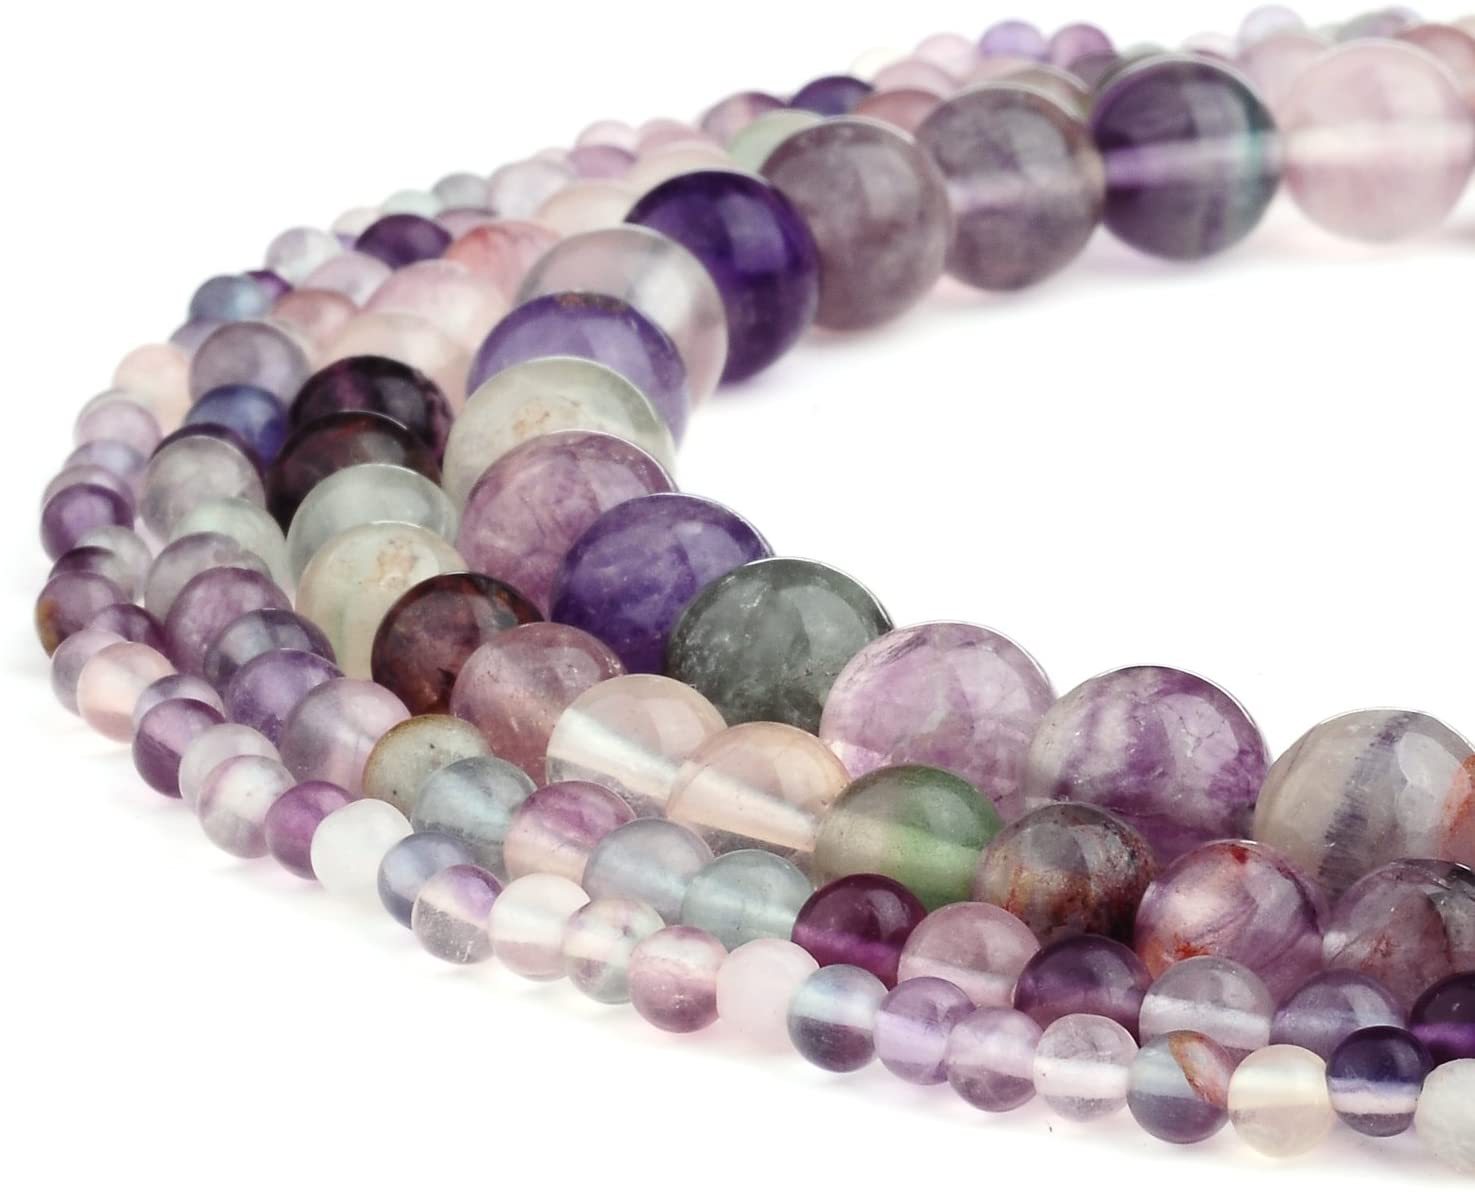 RUBYCA Wholesale Natural Fluorite Gemstone Round Loose Beads for DIY Jewelry Making 1 Strand - 8mm